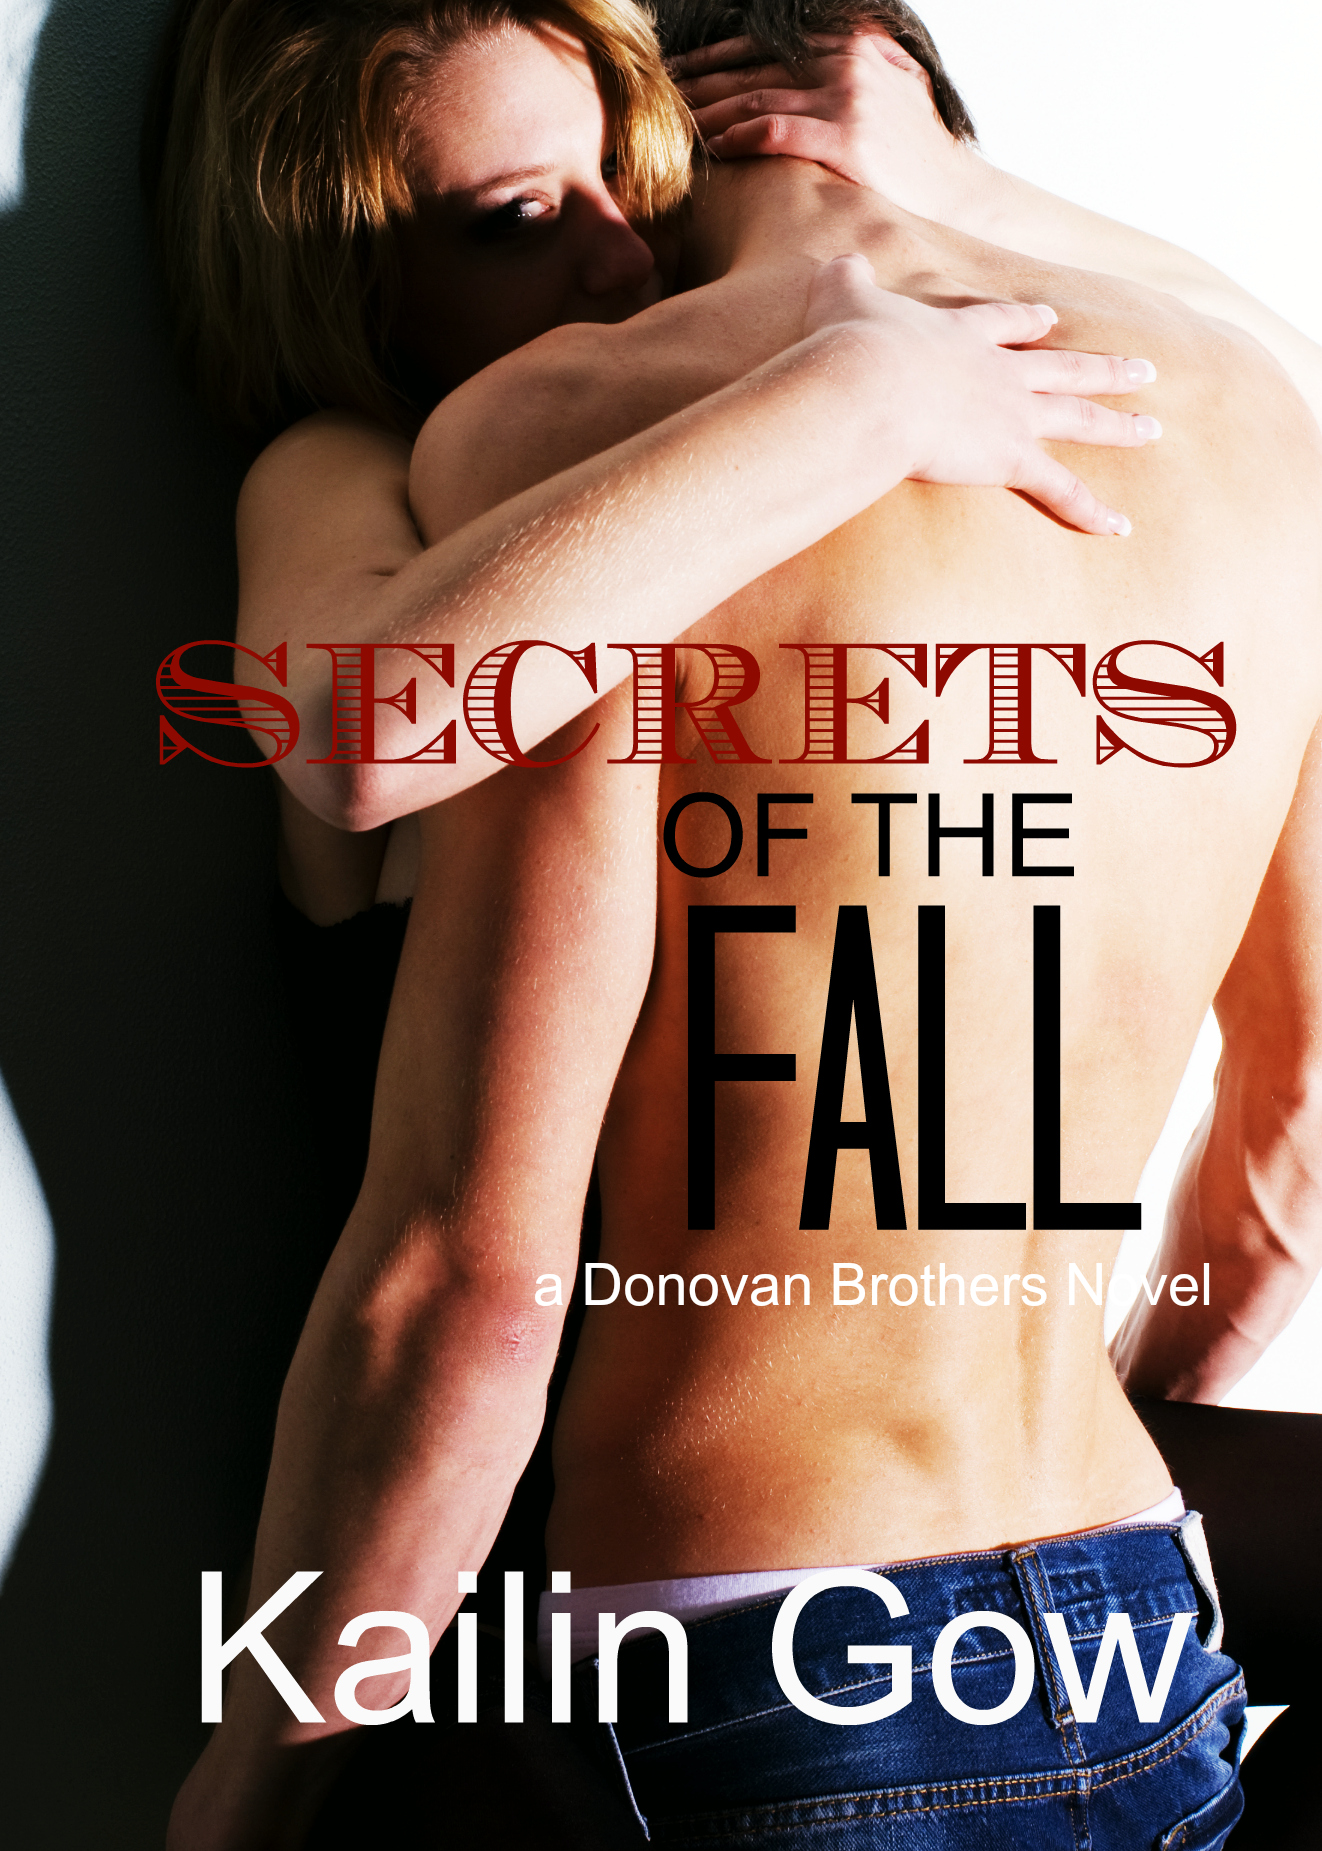 http://kailingow.files.wordpress.com/2013/06/secrets-of-the-fall-by-kailin-gow.jpg